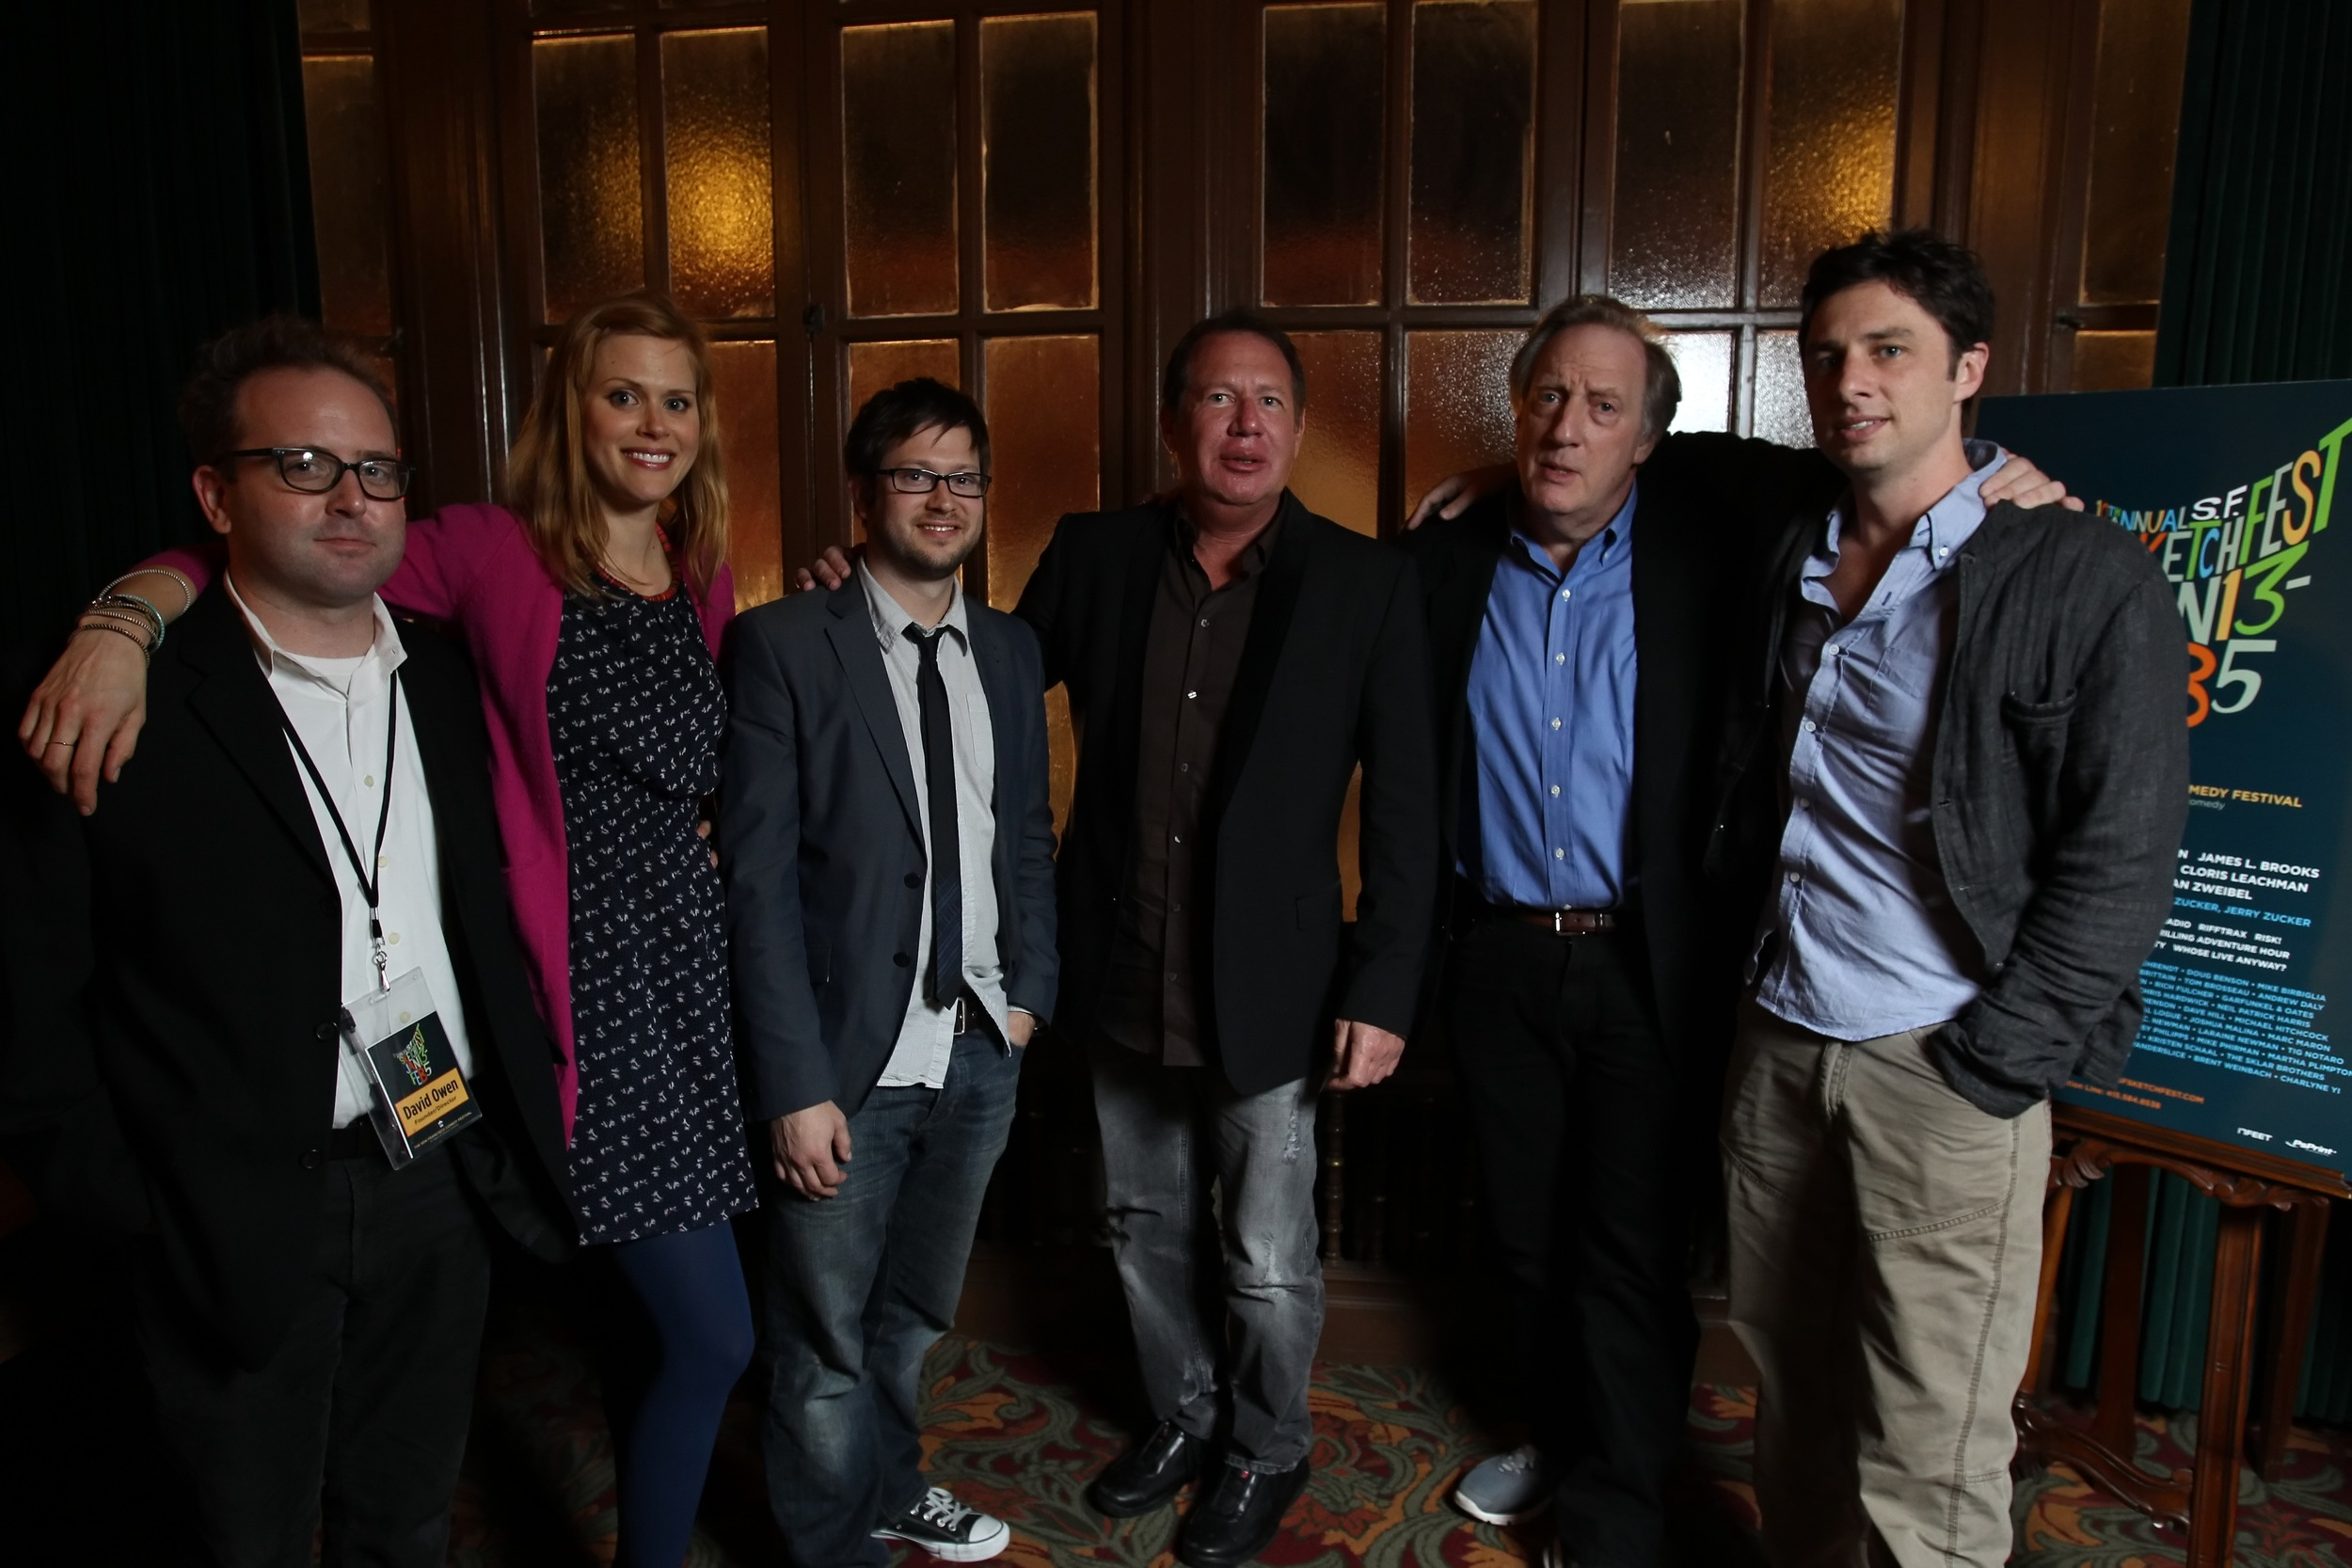 David Owen, Janet Varney, Garry Shandling, Alan Zweibel and Zach Braff. Photo by Jakub Mosur.